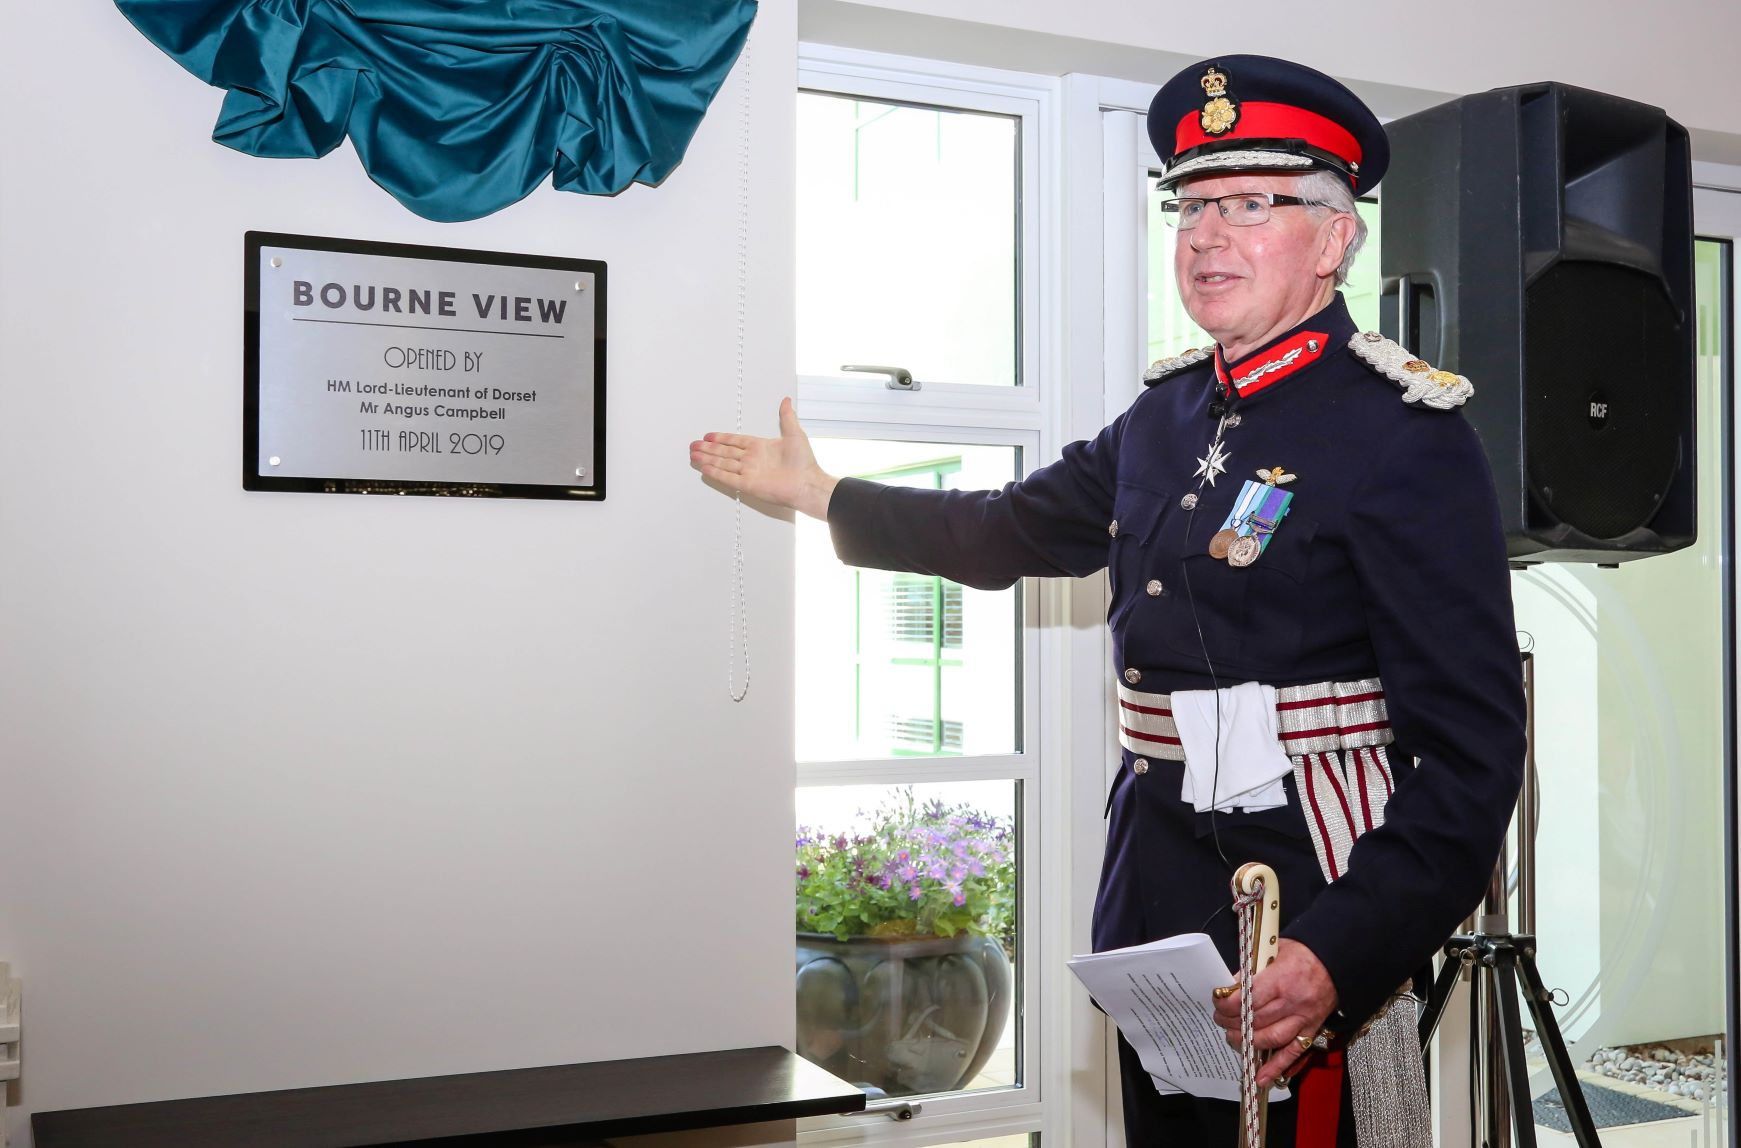 HM Lord-Lieutenant of Dorset, Angus Campbell opens Bourne View